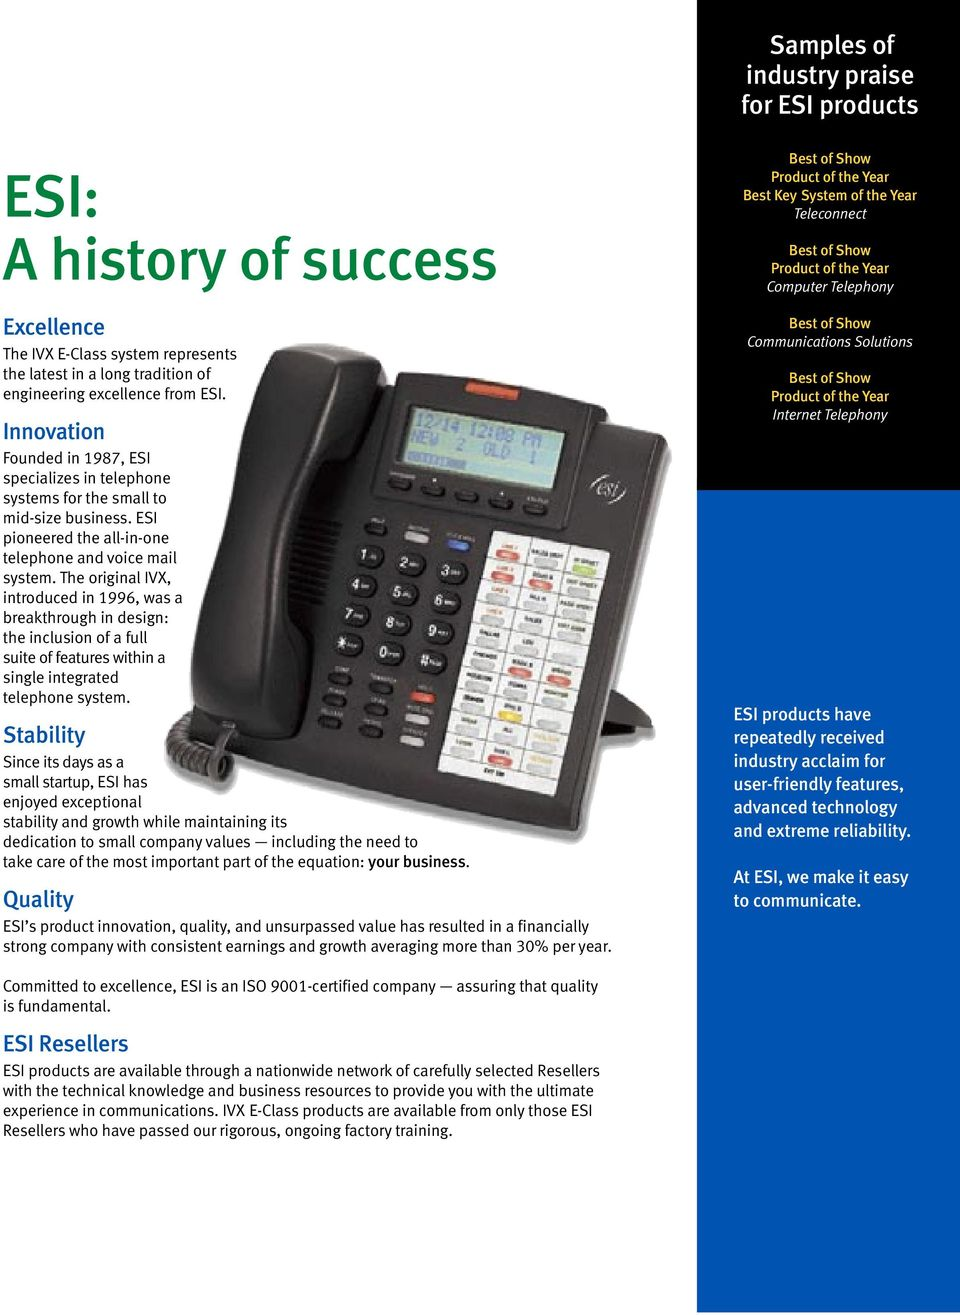 The original IVX, introduced in 1996, was a breakthrough in design: the inclusion of a full suite of features within a single integrated telephone system.